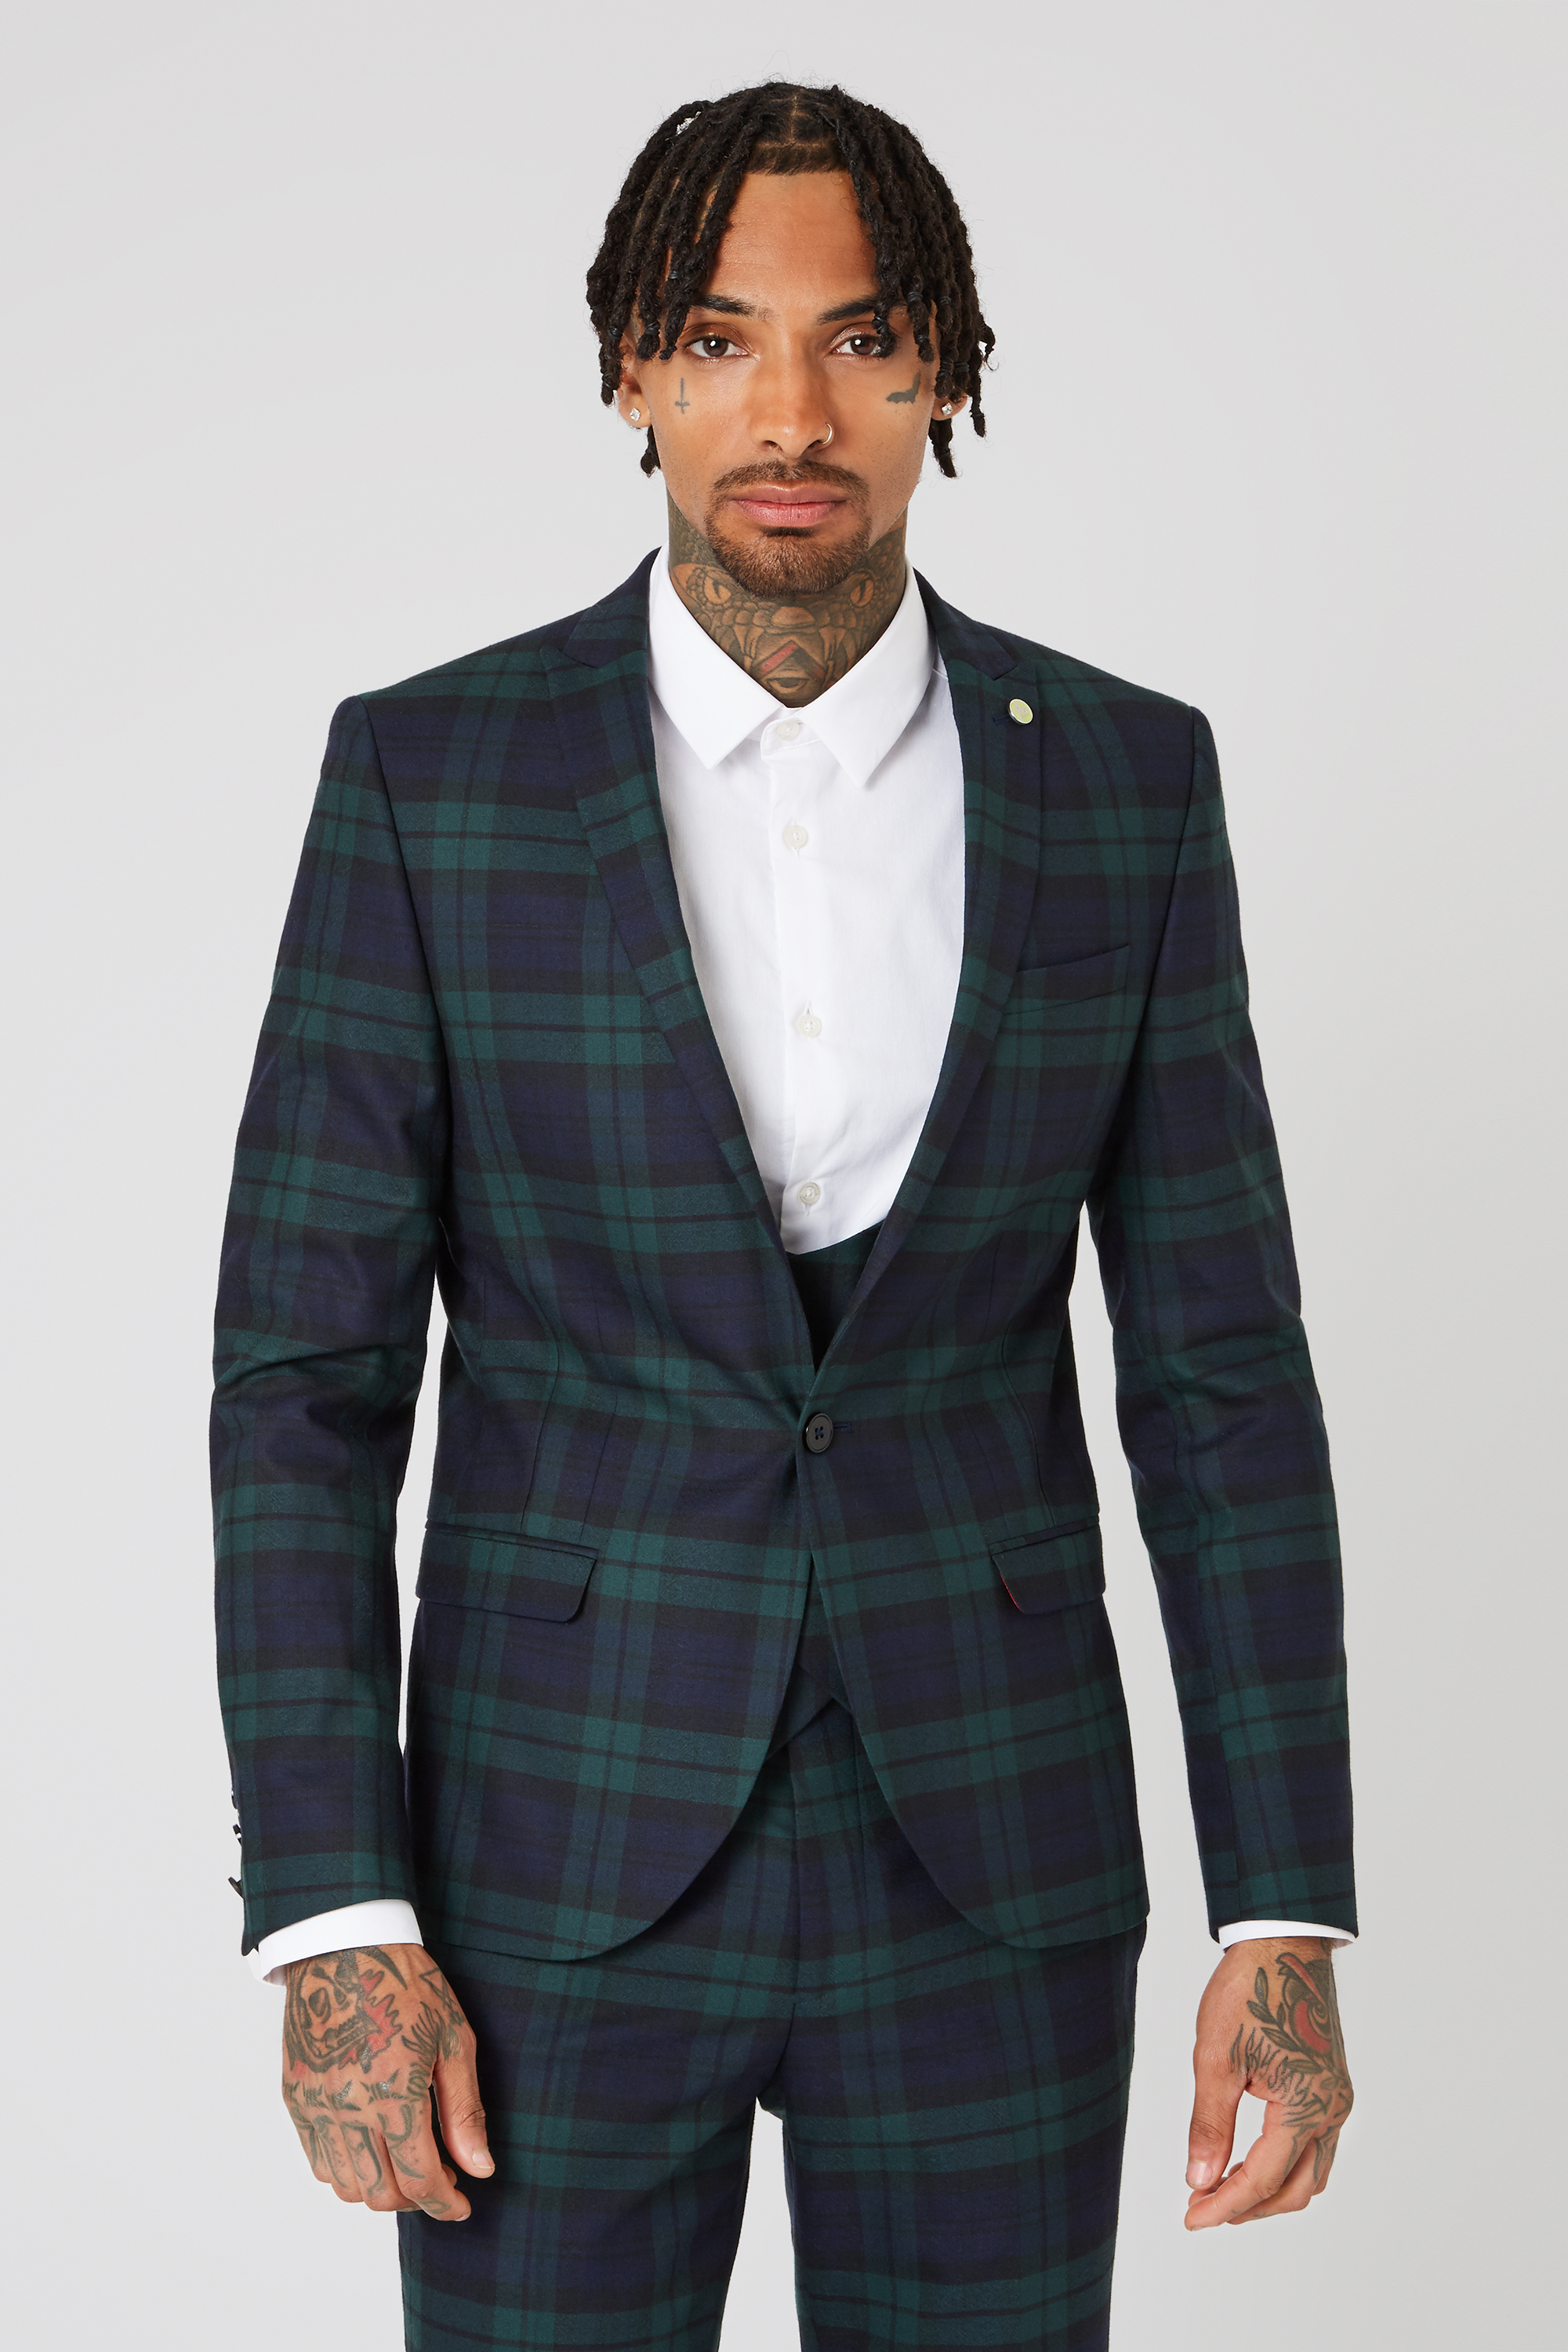 GINGER SKINNY FIT JACKET IN GREEN TARTAN